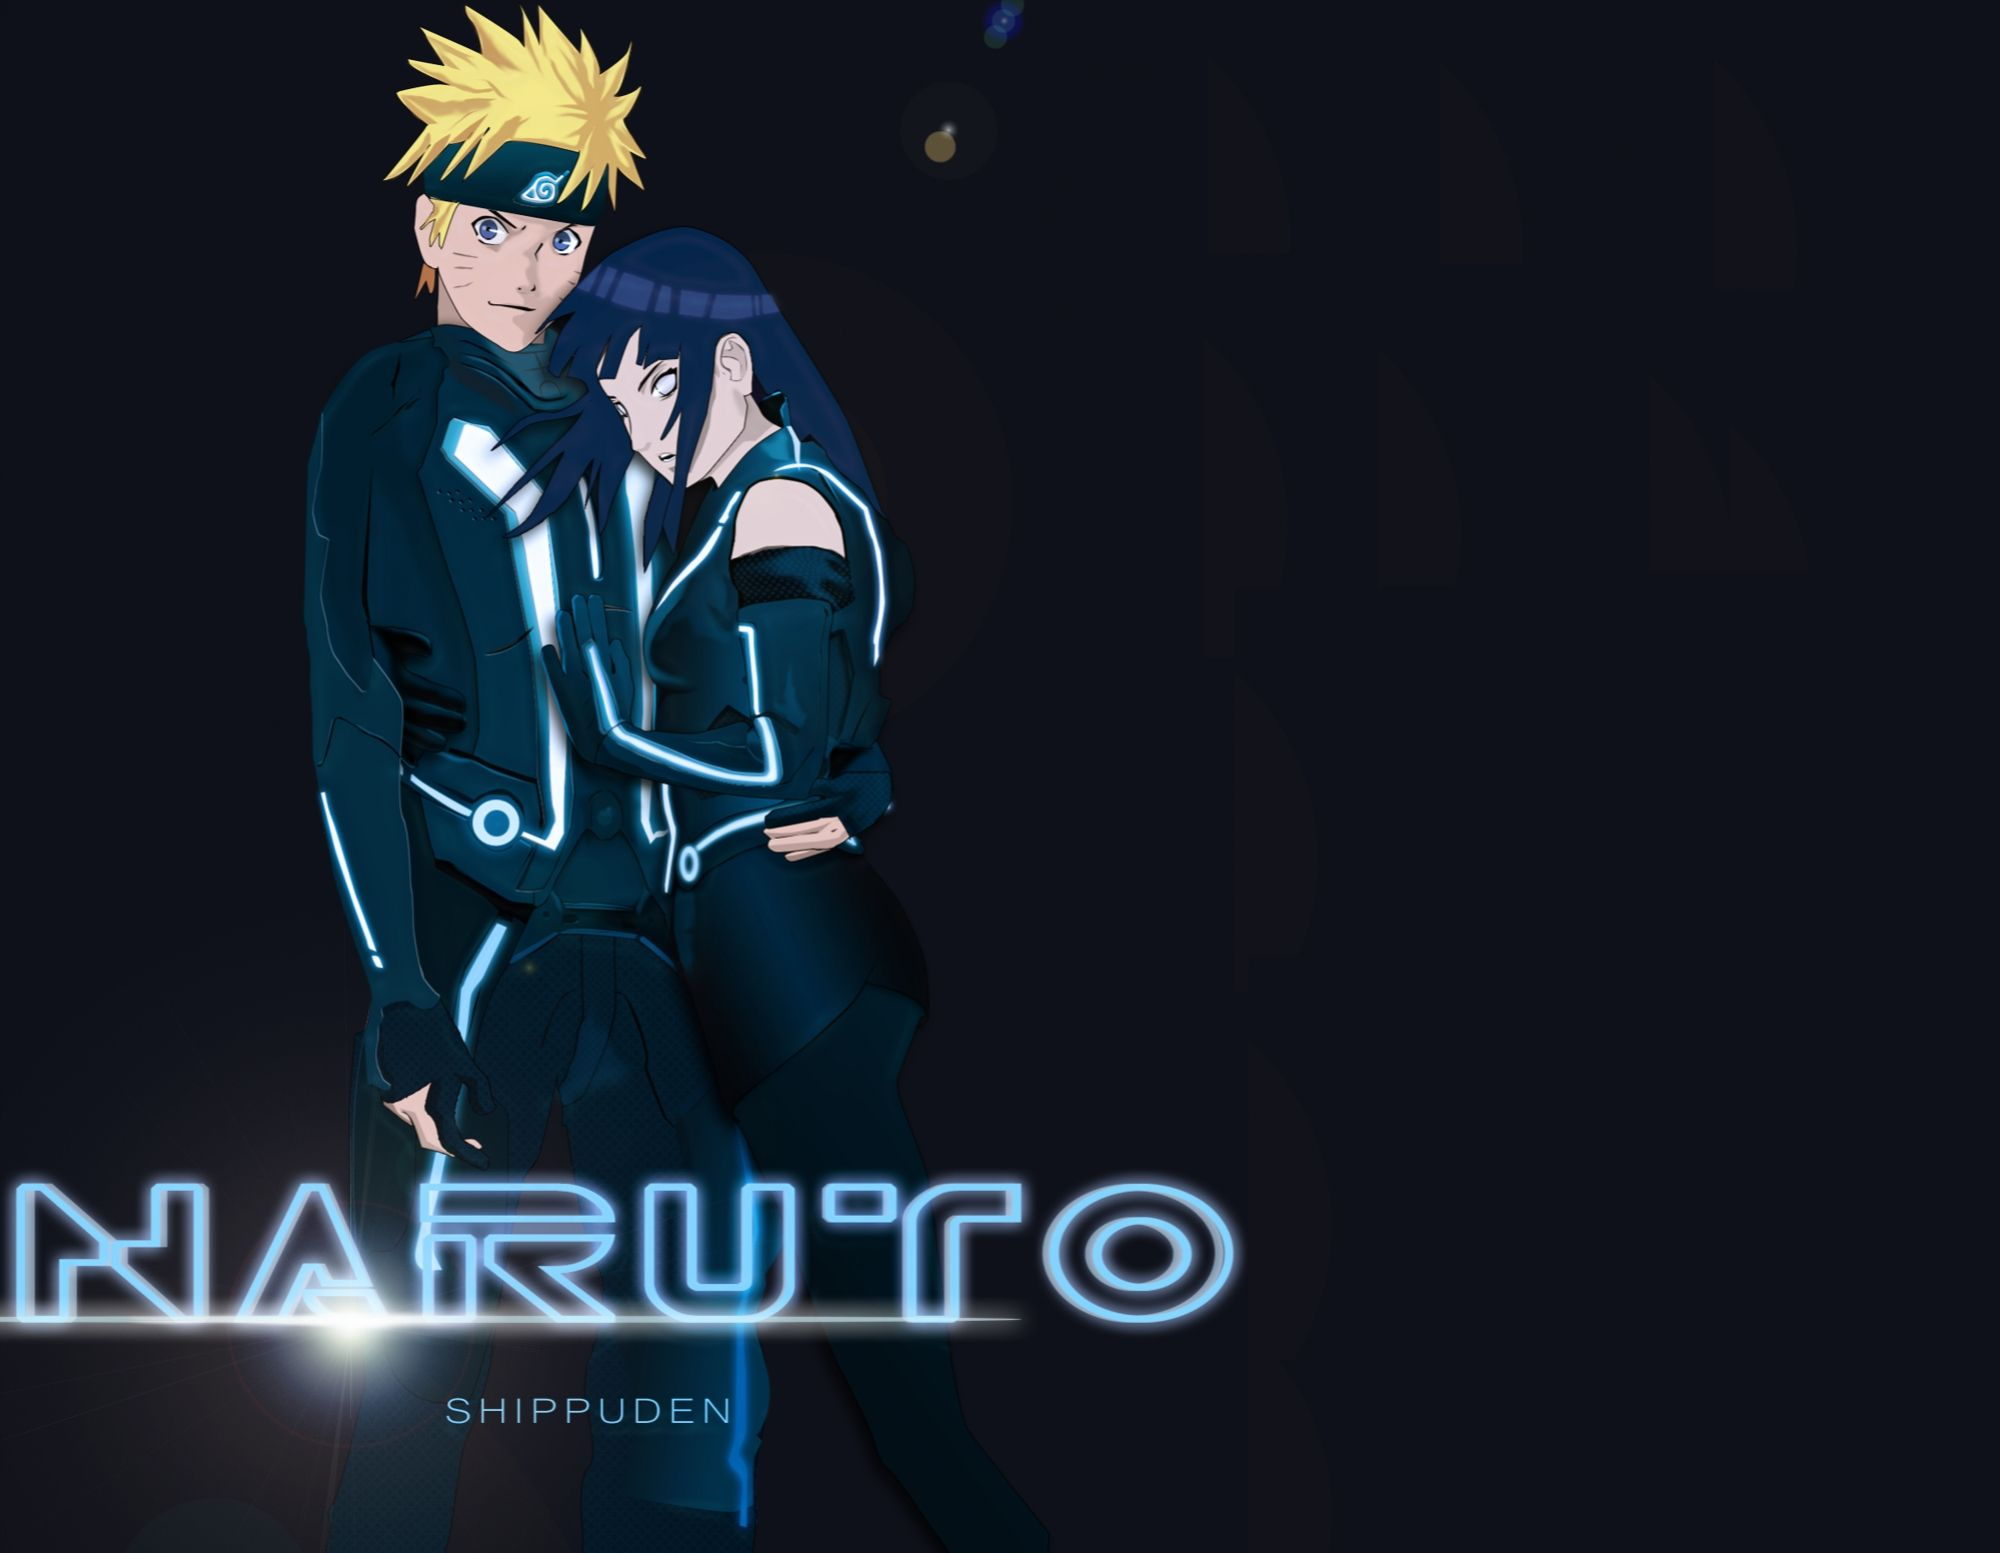 Naruto and hinata wallpaper hd Group 79